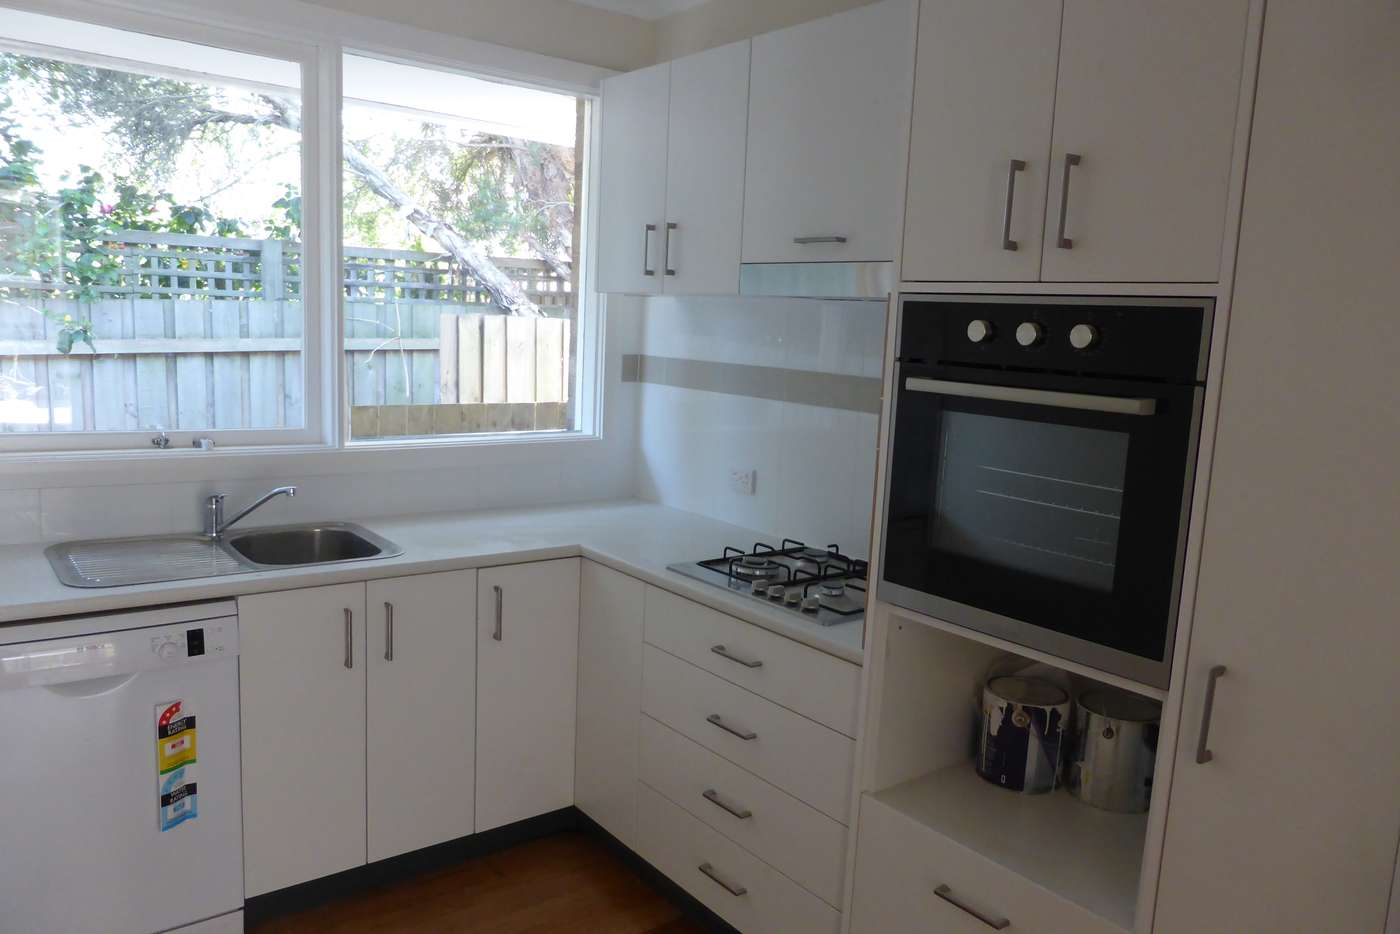 Main view of Homely unit listing, 4/6 East India Avenue, Nunawading VIC 3131